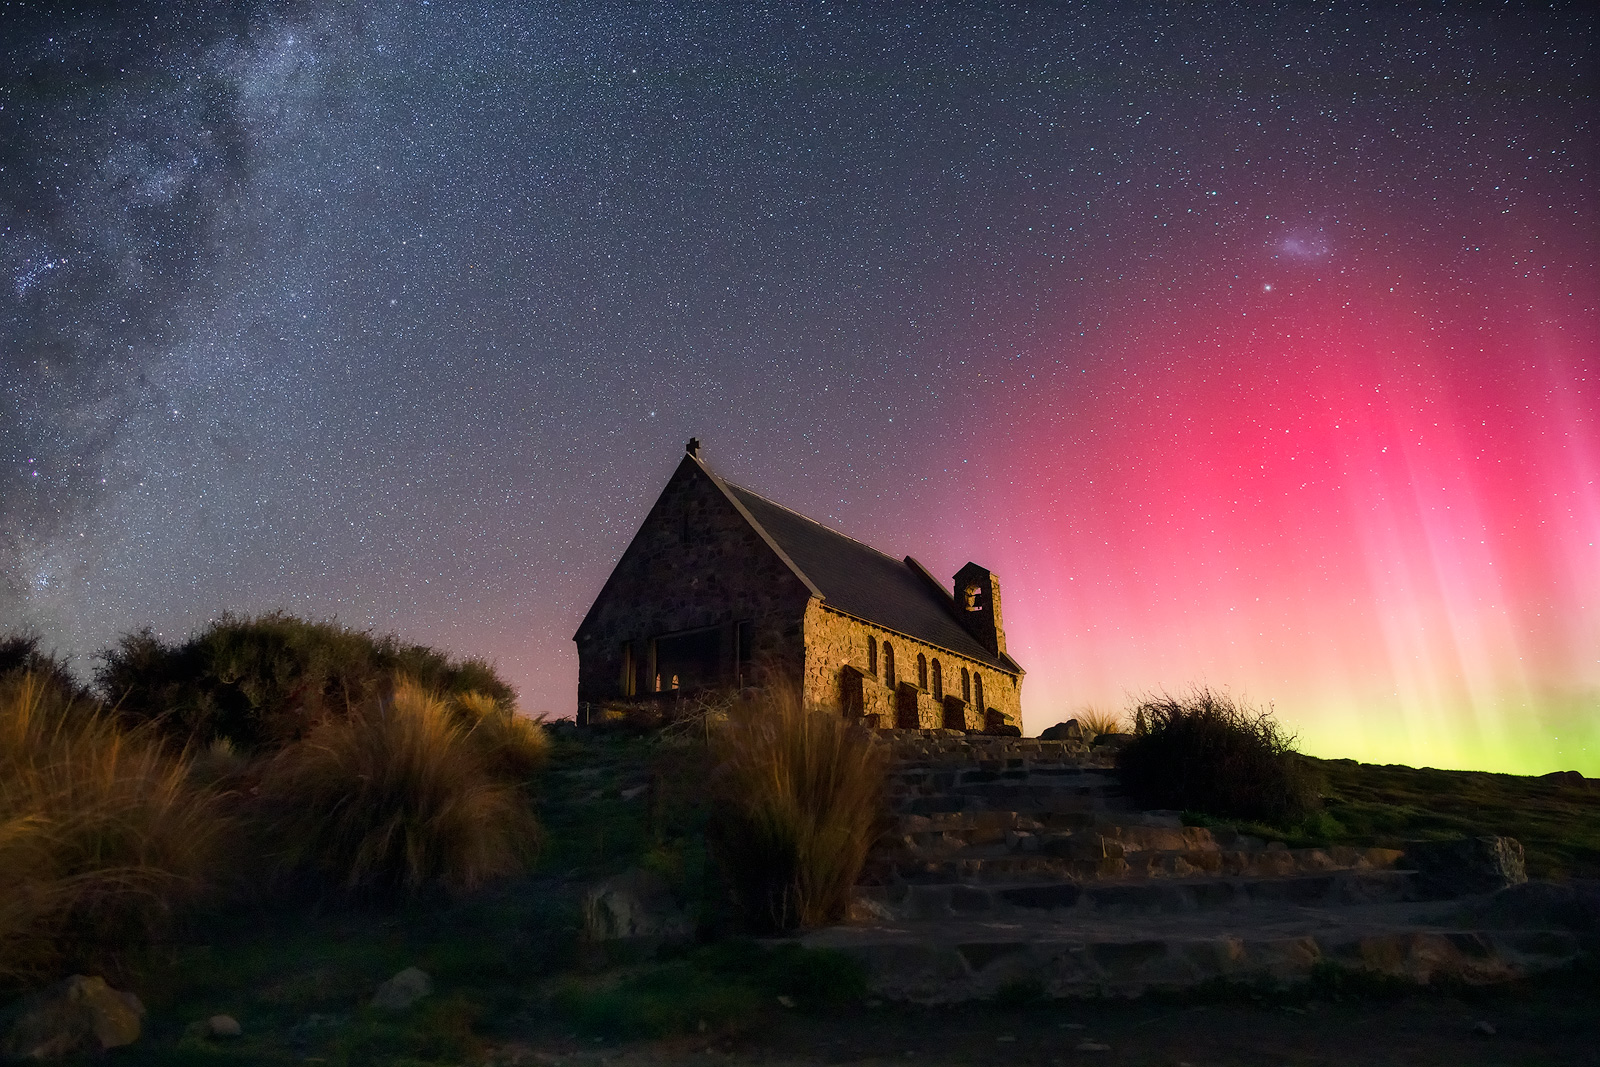 A stone church surrounded by beams from the southern lights (Aurora australis) on one side and the Milky Way on the other.